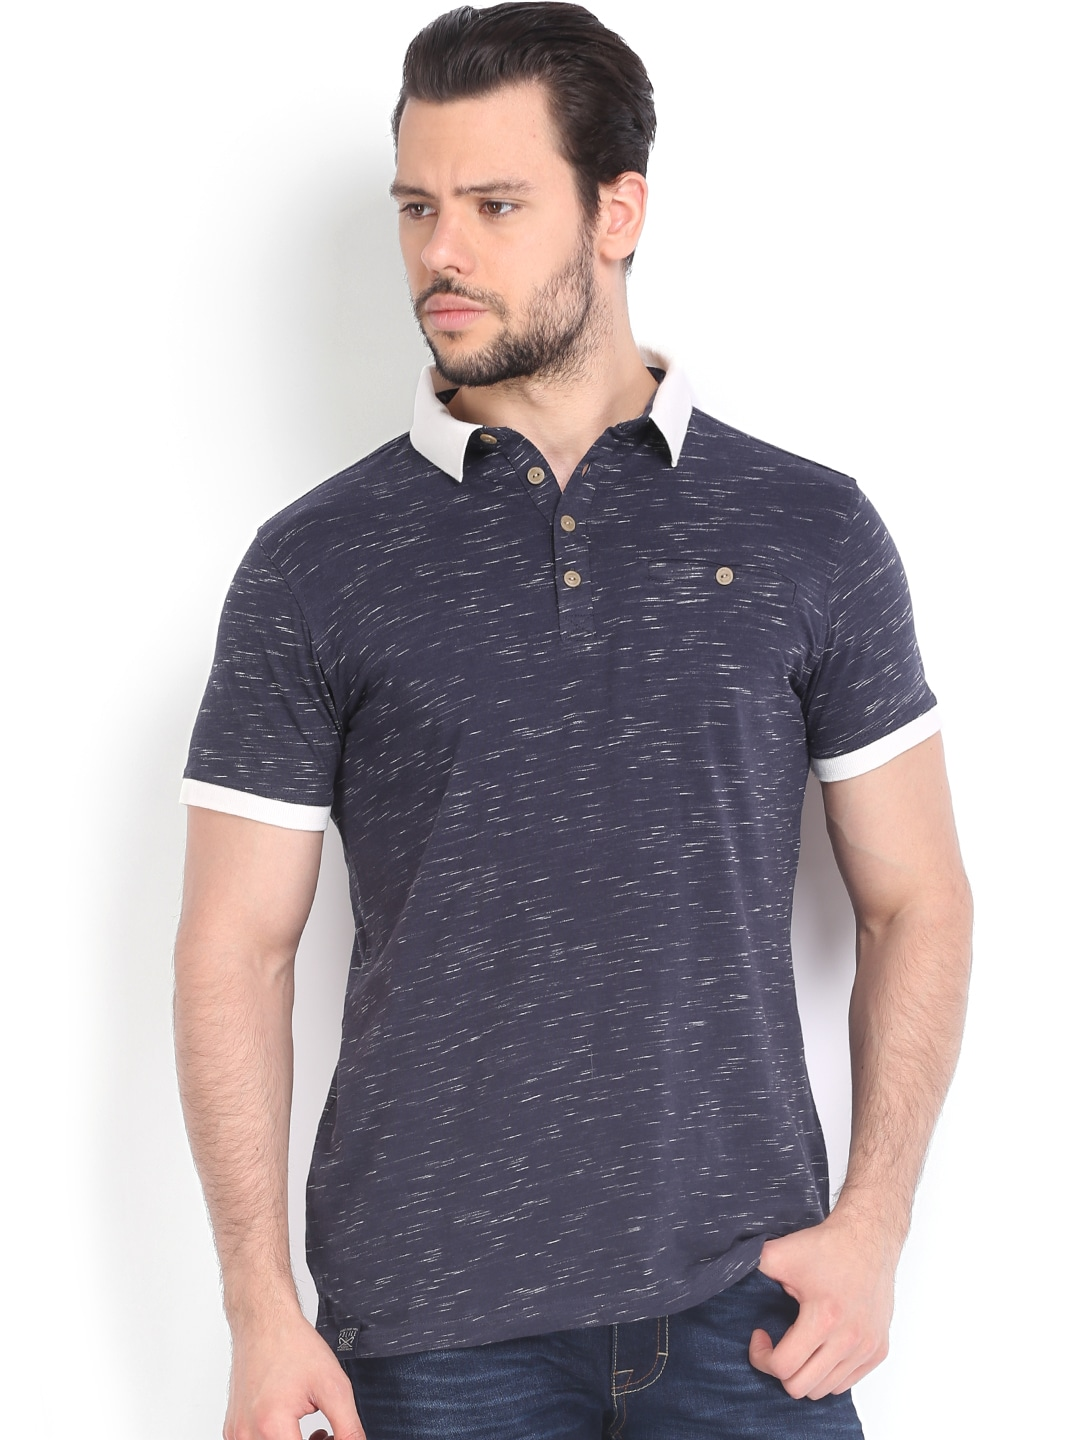 Police 883 Police Men Navy Polo T-Shirt (Multicolor)